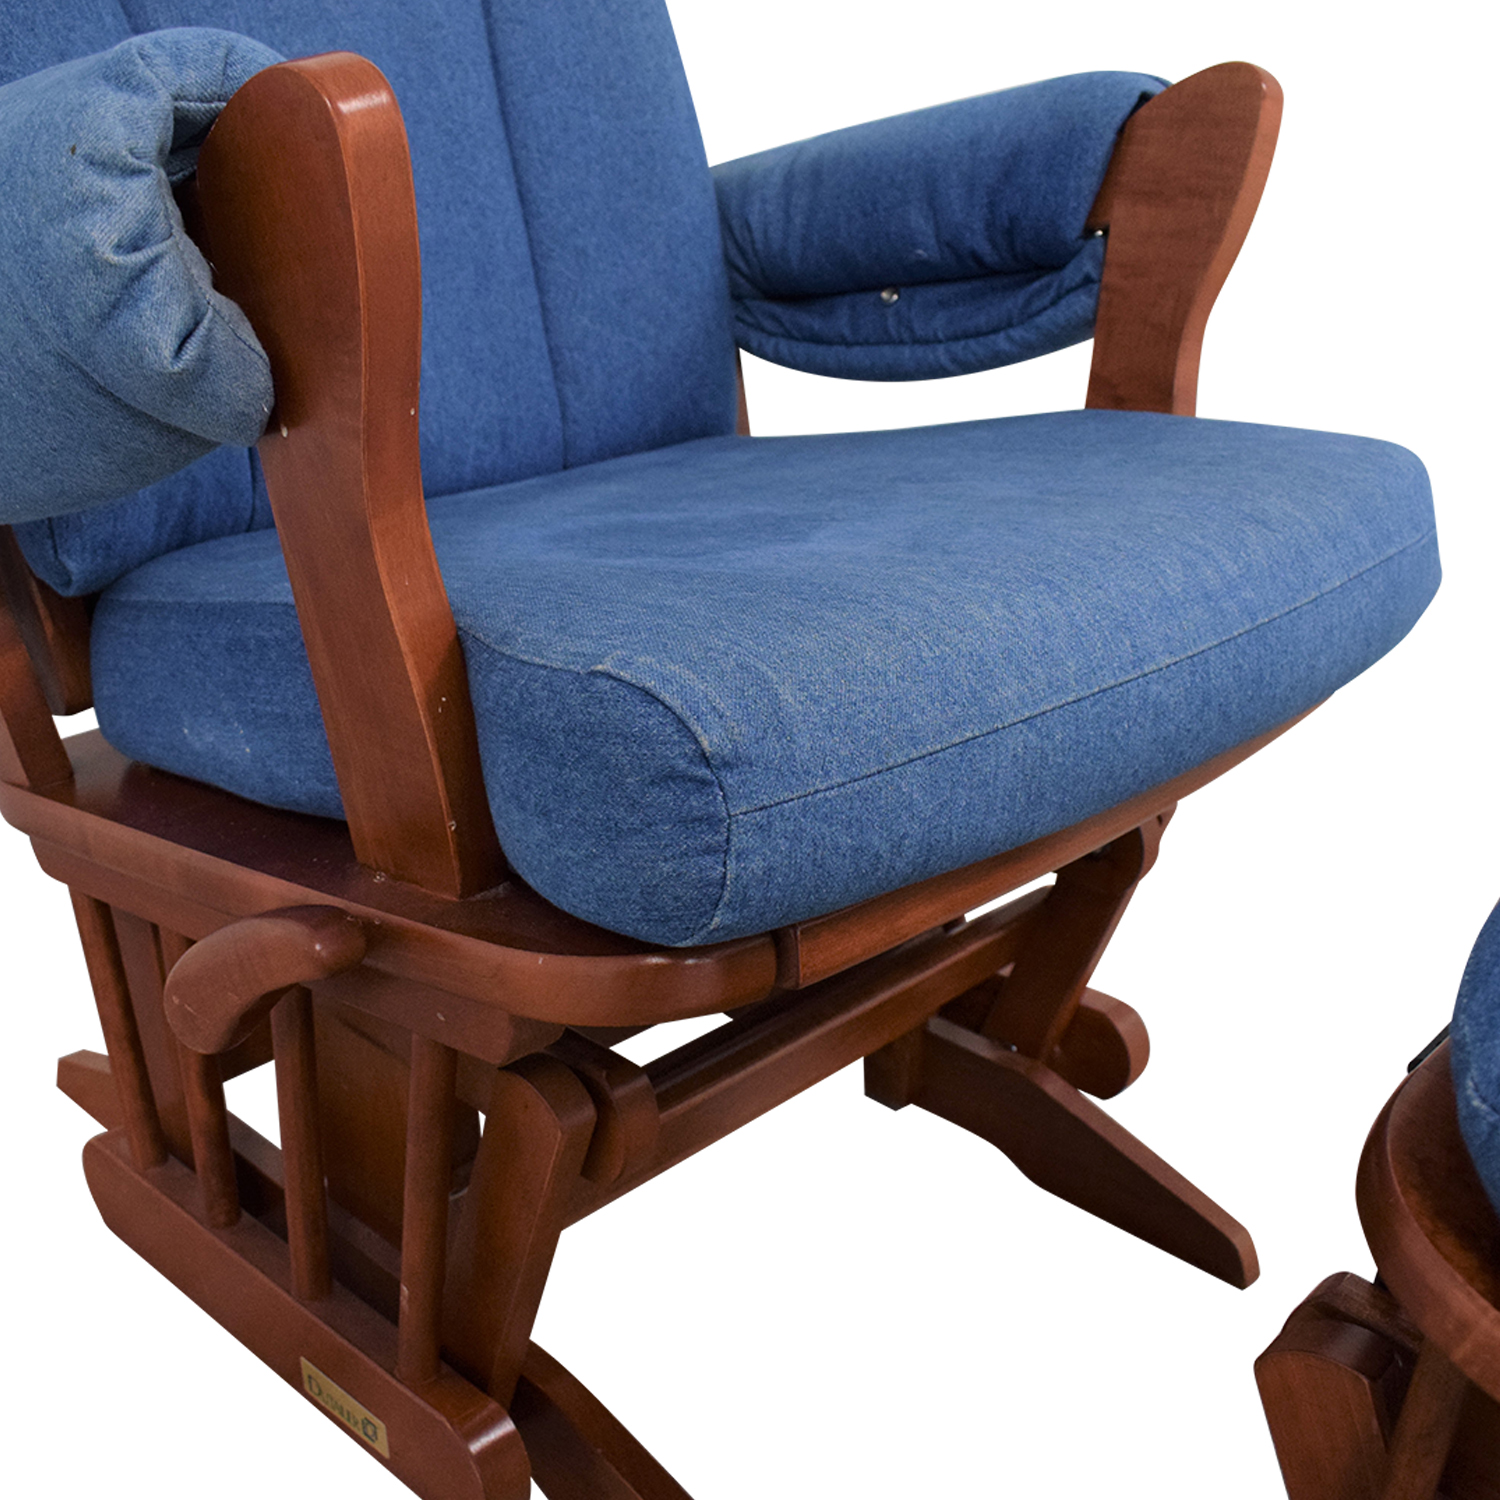 Dutailier Multi-Position Reclining Sleigh Glider and Ottoman in Blue Denim / Accent Chairs